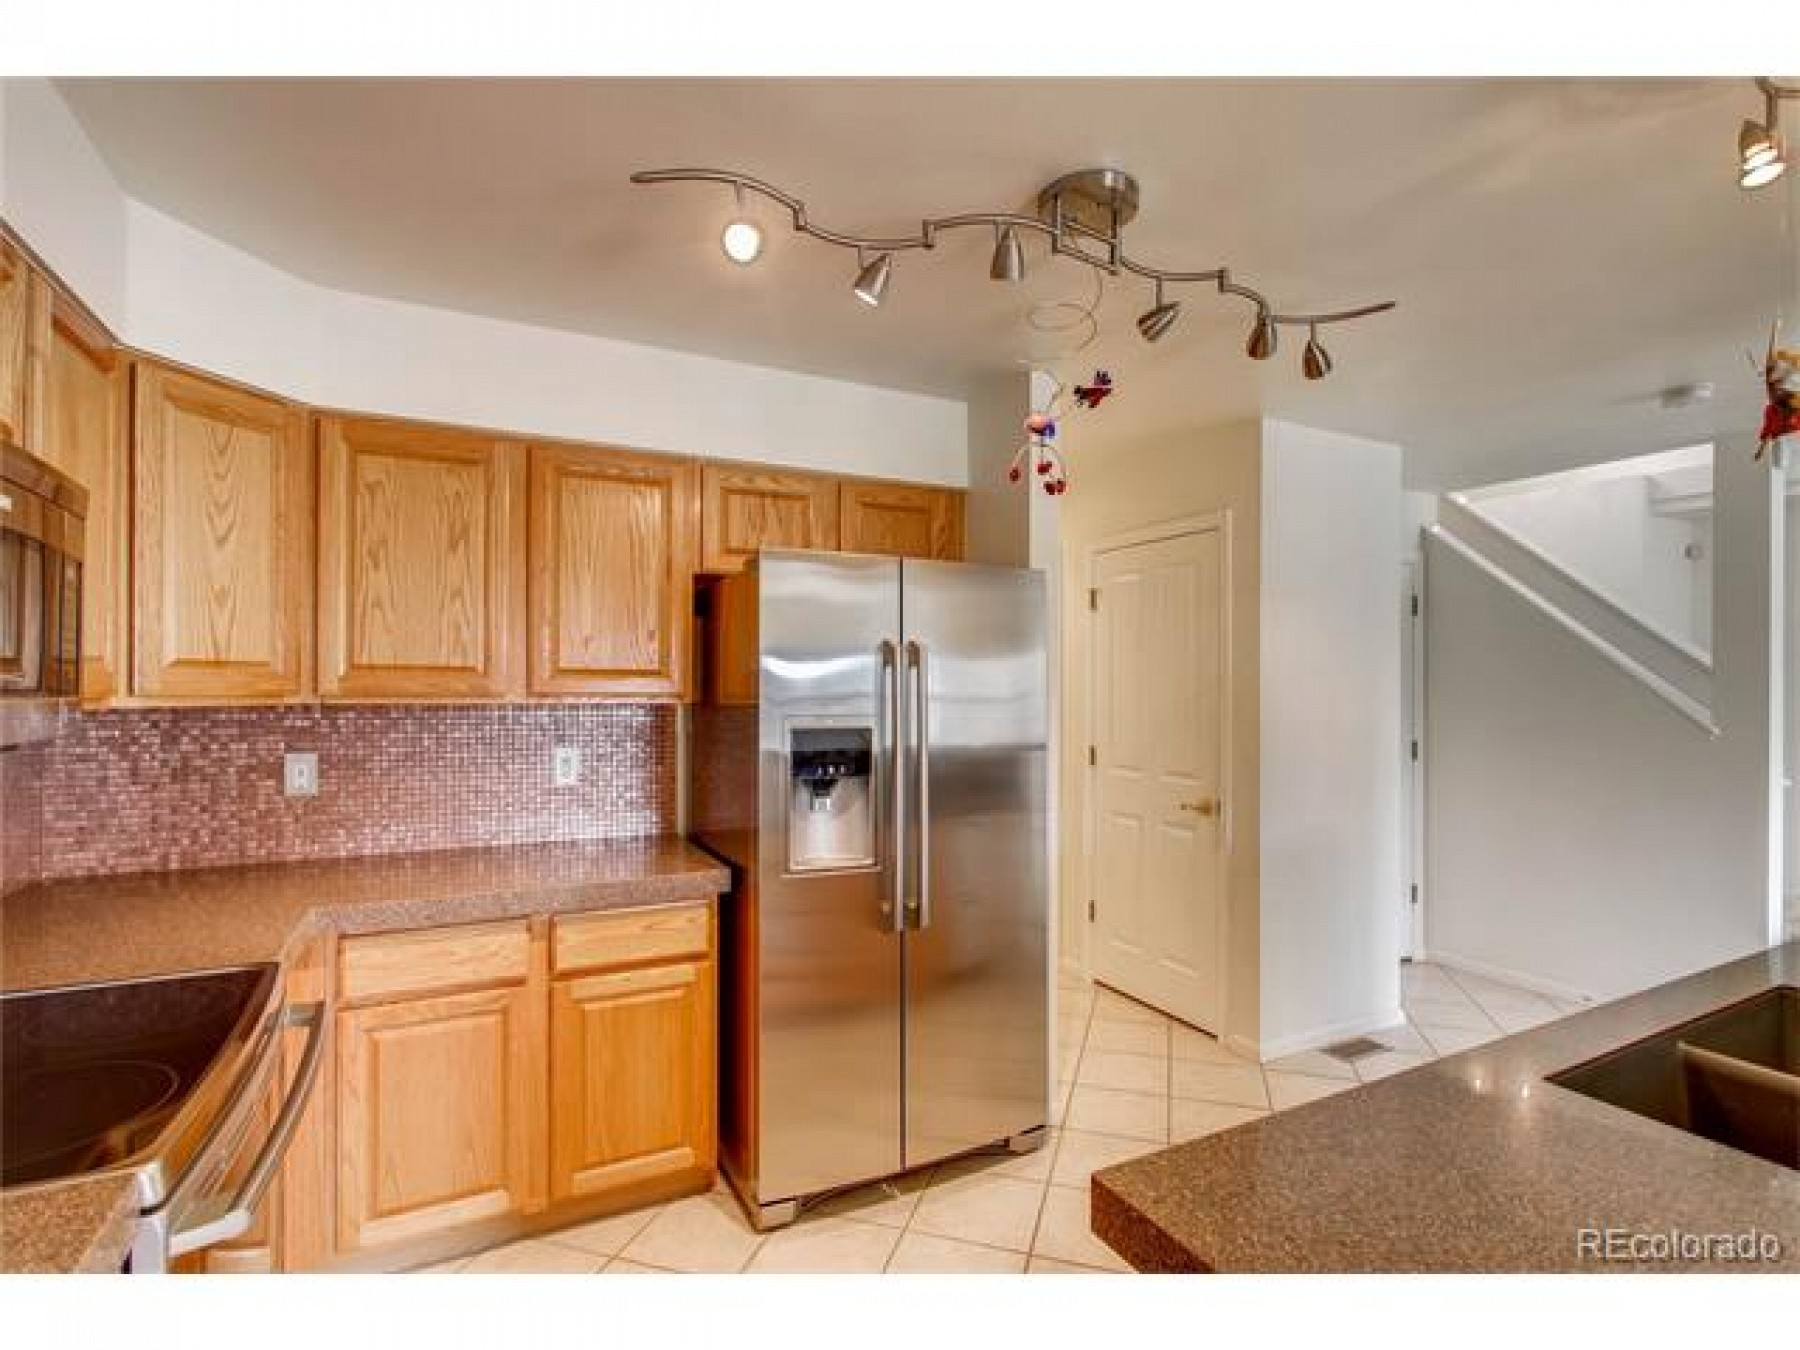 7700 West Grant Ranch Boulevard #8B, Littleton, CO 80123